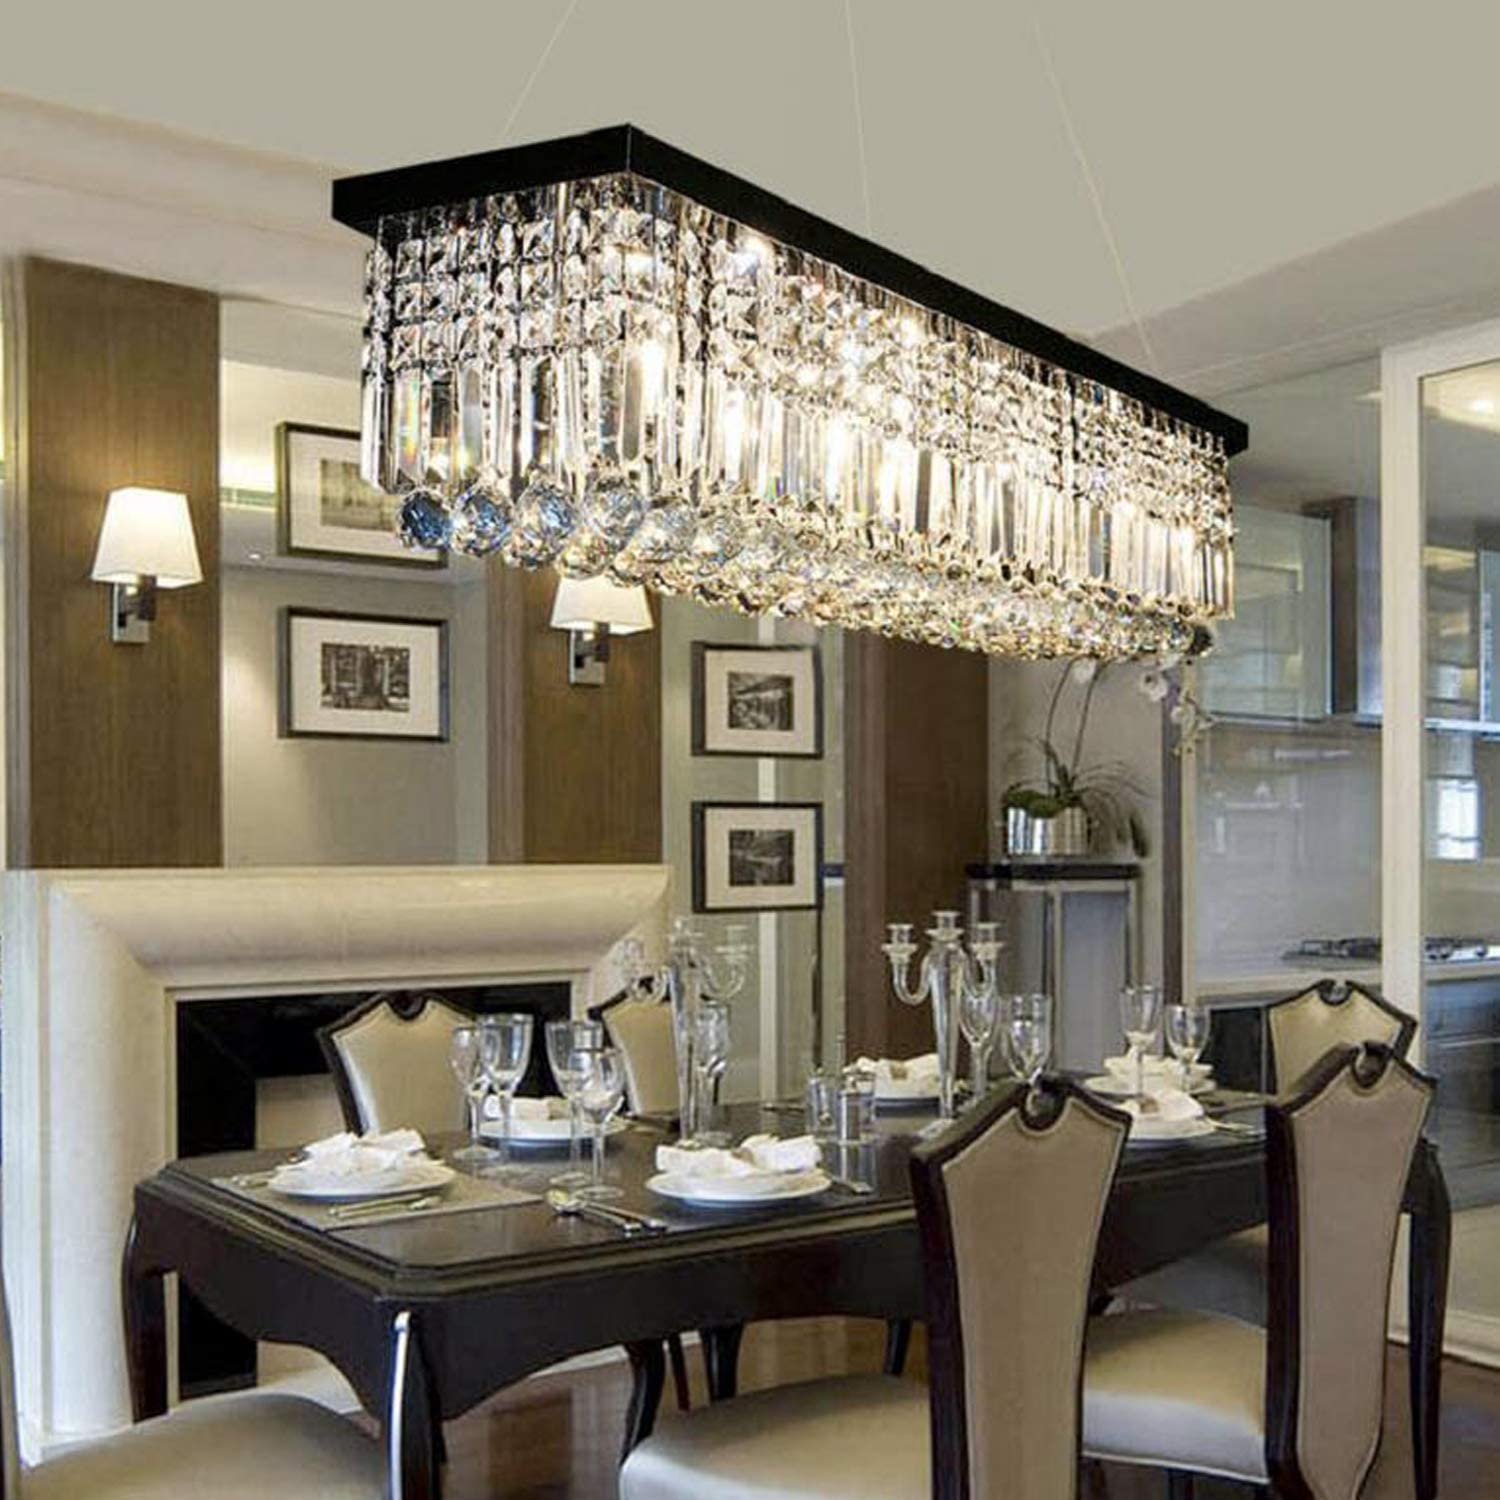 Moooni Modern Rectangular Raindrop Crystal Chandelier Lighting Rectangle Pendant Light Fixture for Dining Rooms Island Black L39.5 X W10 X H10